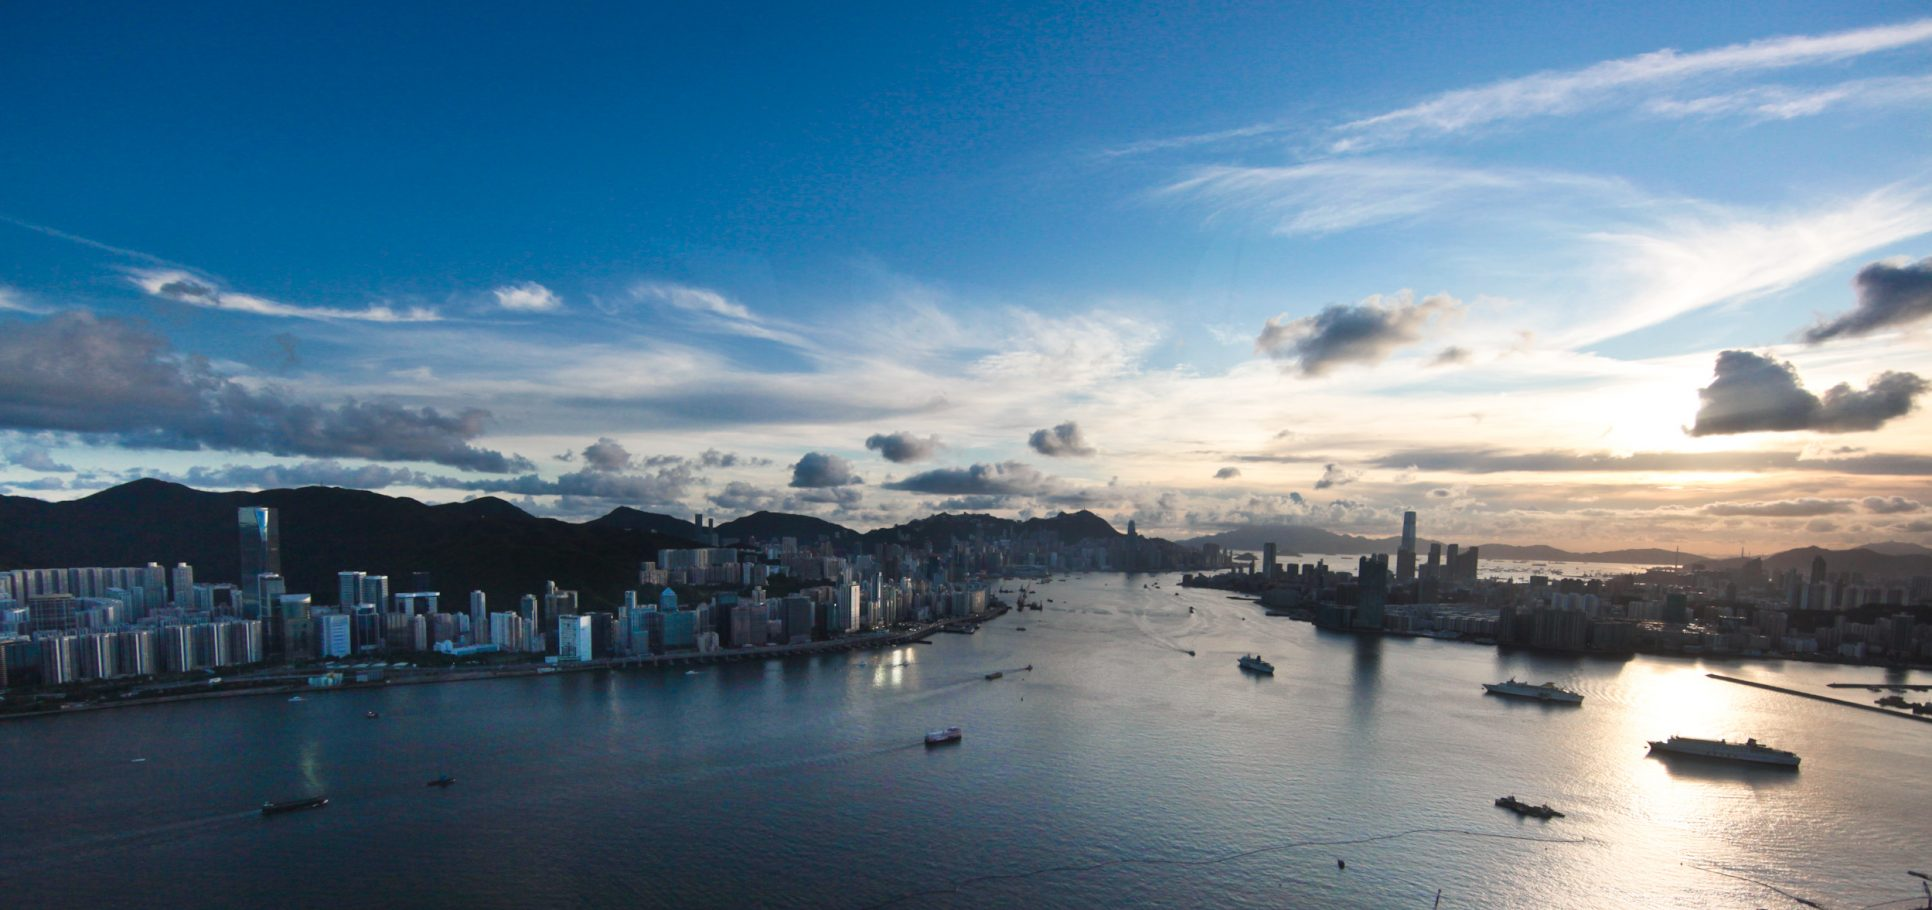 Hong Kong Photography, Aerial Photography, Landscape Photography